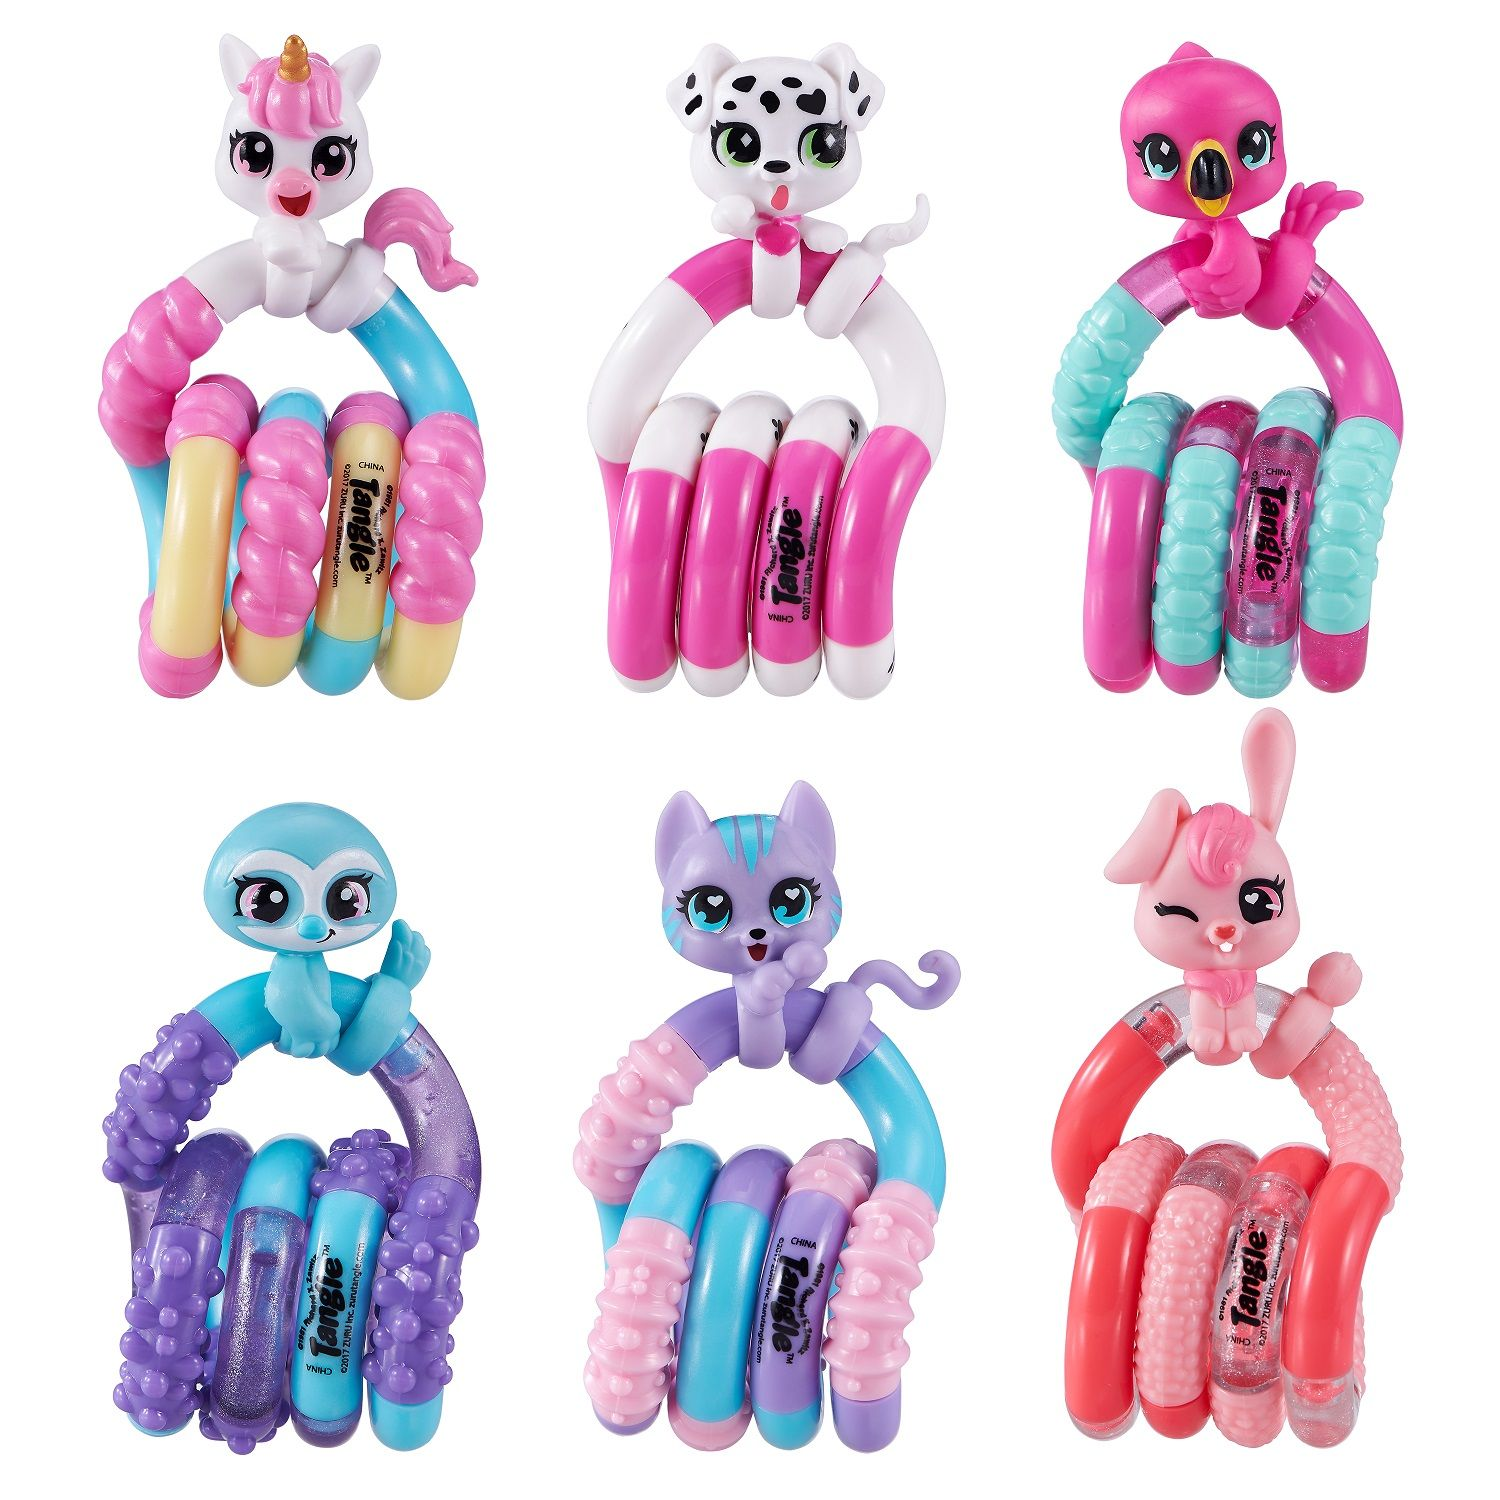 Tangle Pets Toys For Hands Wholesale In 2020 Tangle Toy Stress Toys Tangle Fidget Toy